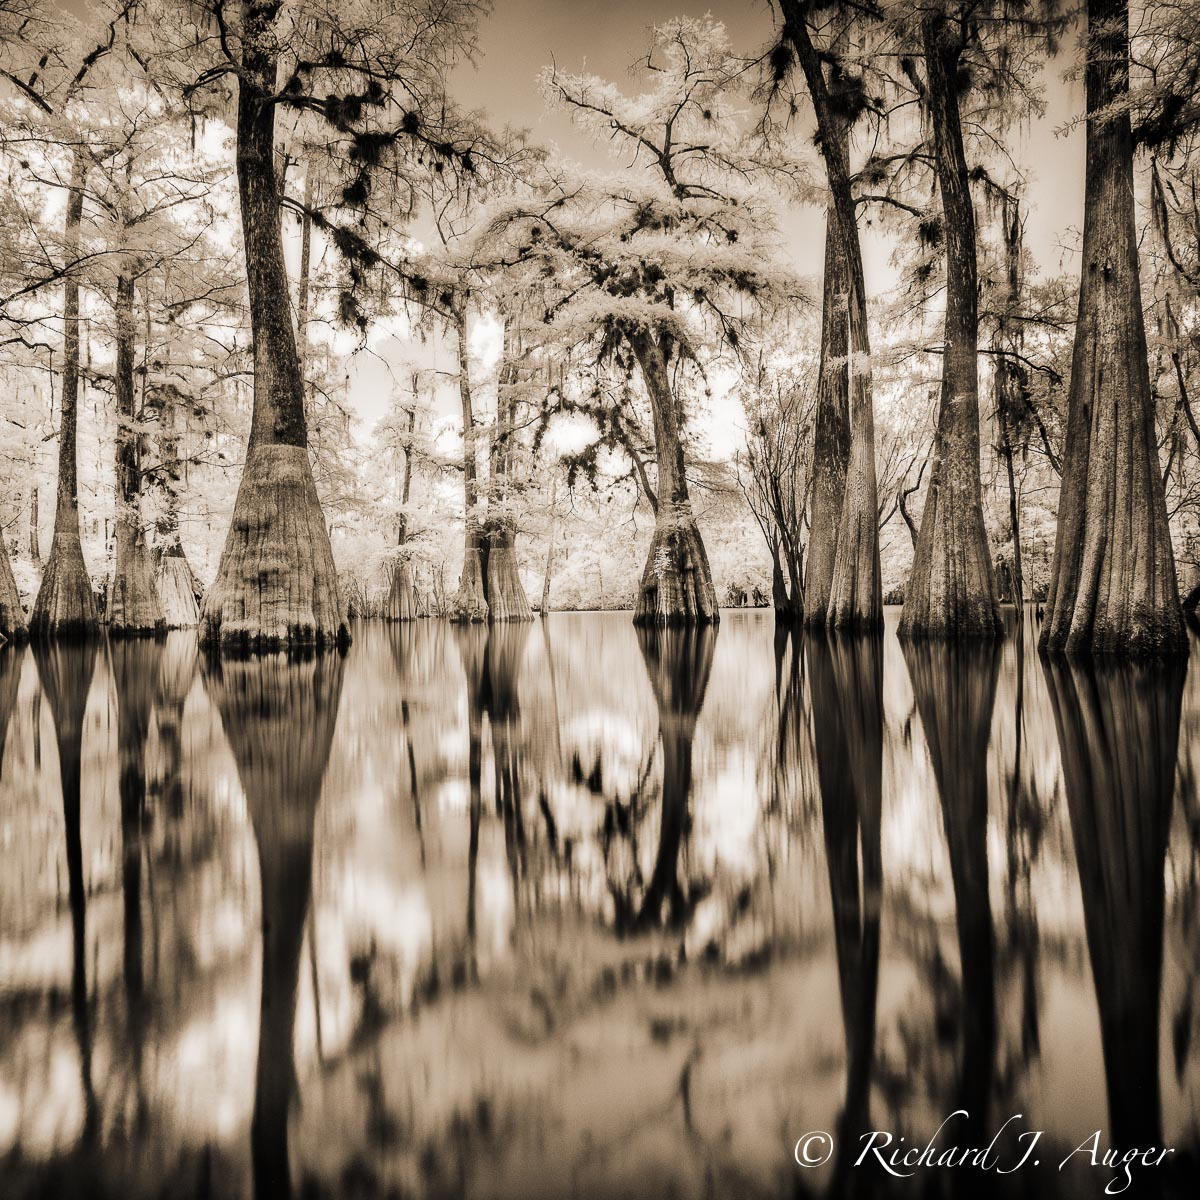 Suwannee River, Florida, Cypress, Swamp, Reflections, Tall, Landscape, water, photograph, square, sepia tone, black and white